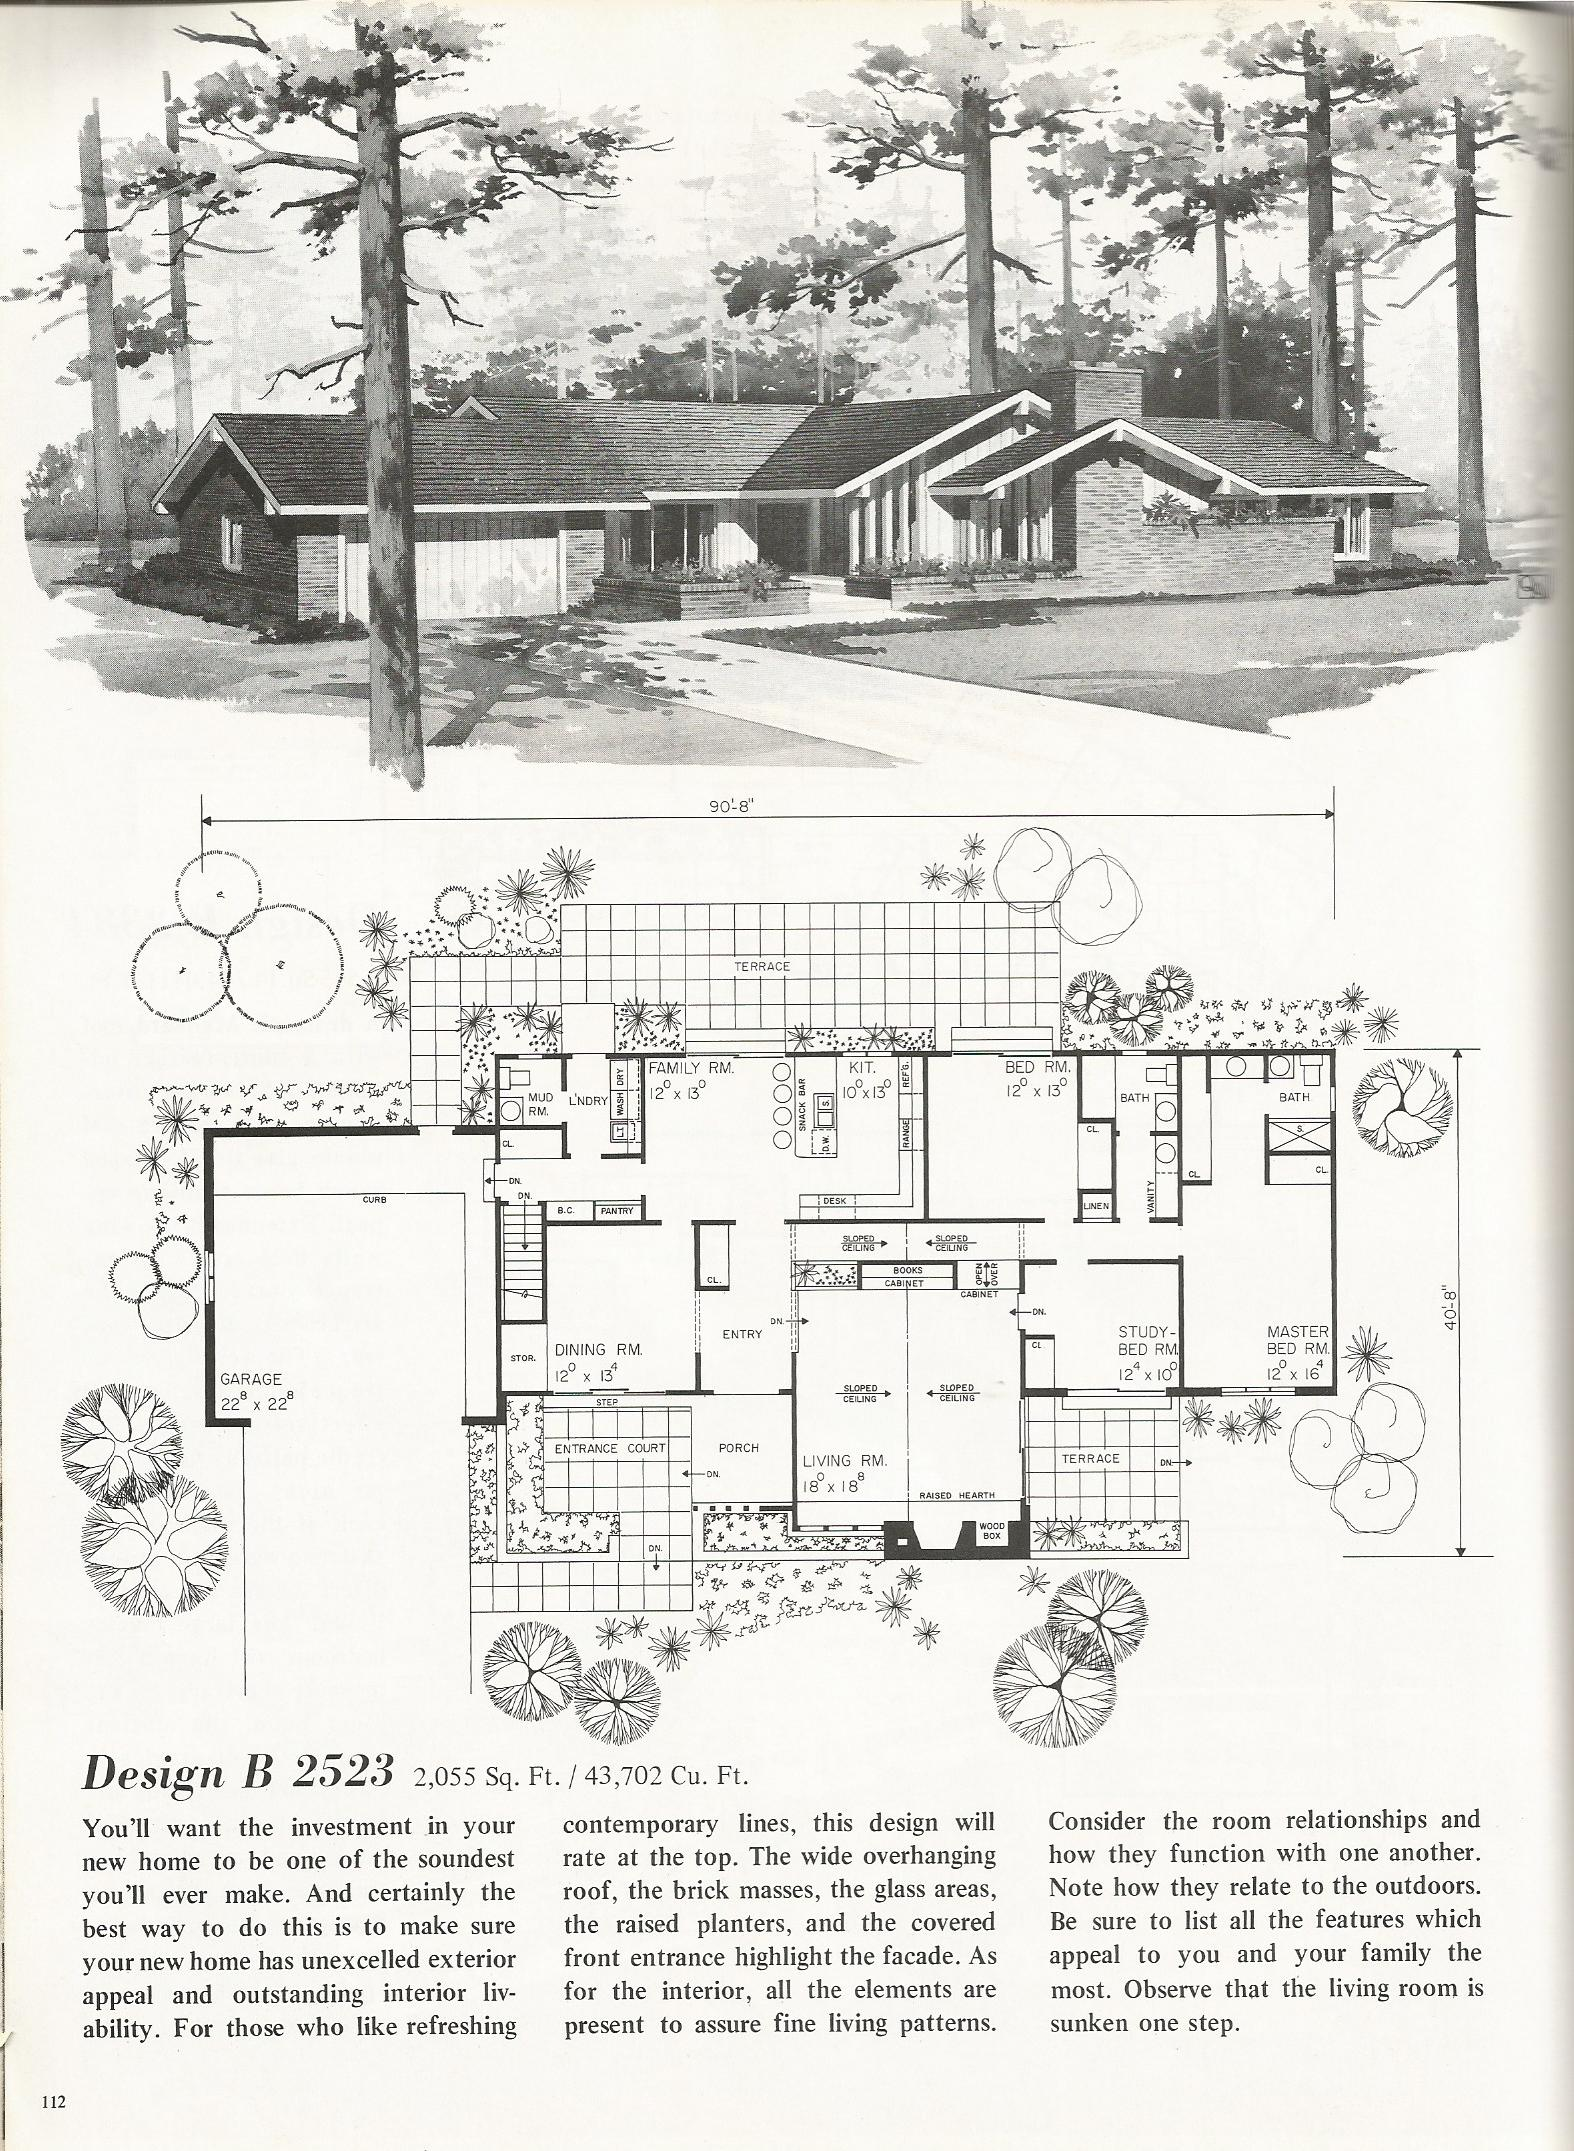 Vintage House Plans 2523 Antique Alter Ego